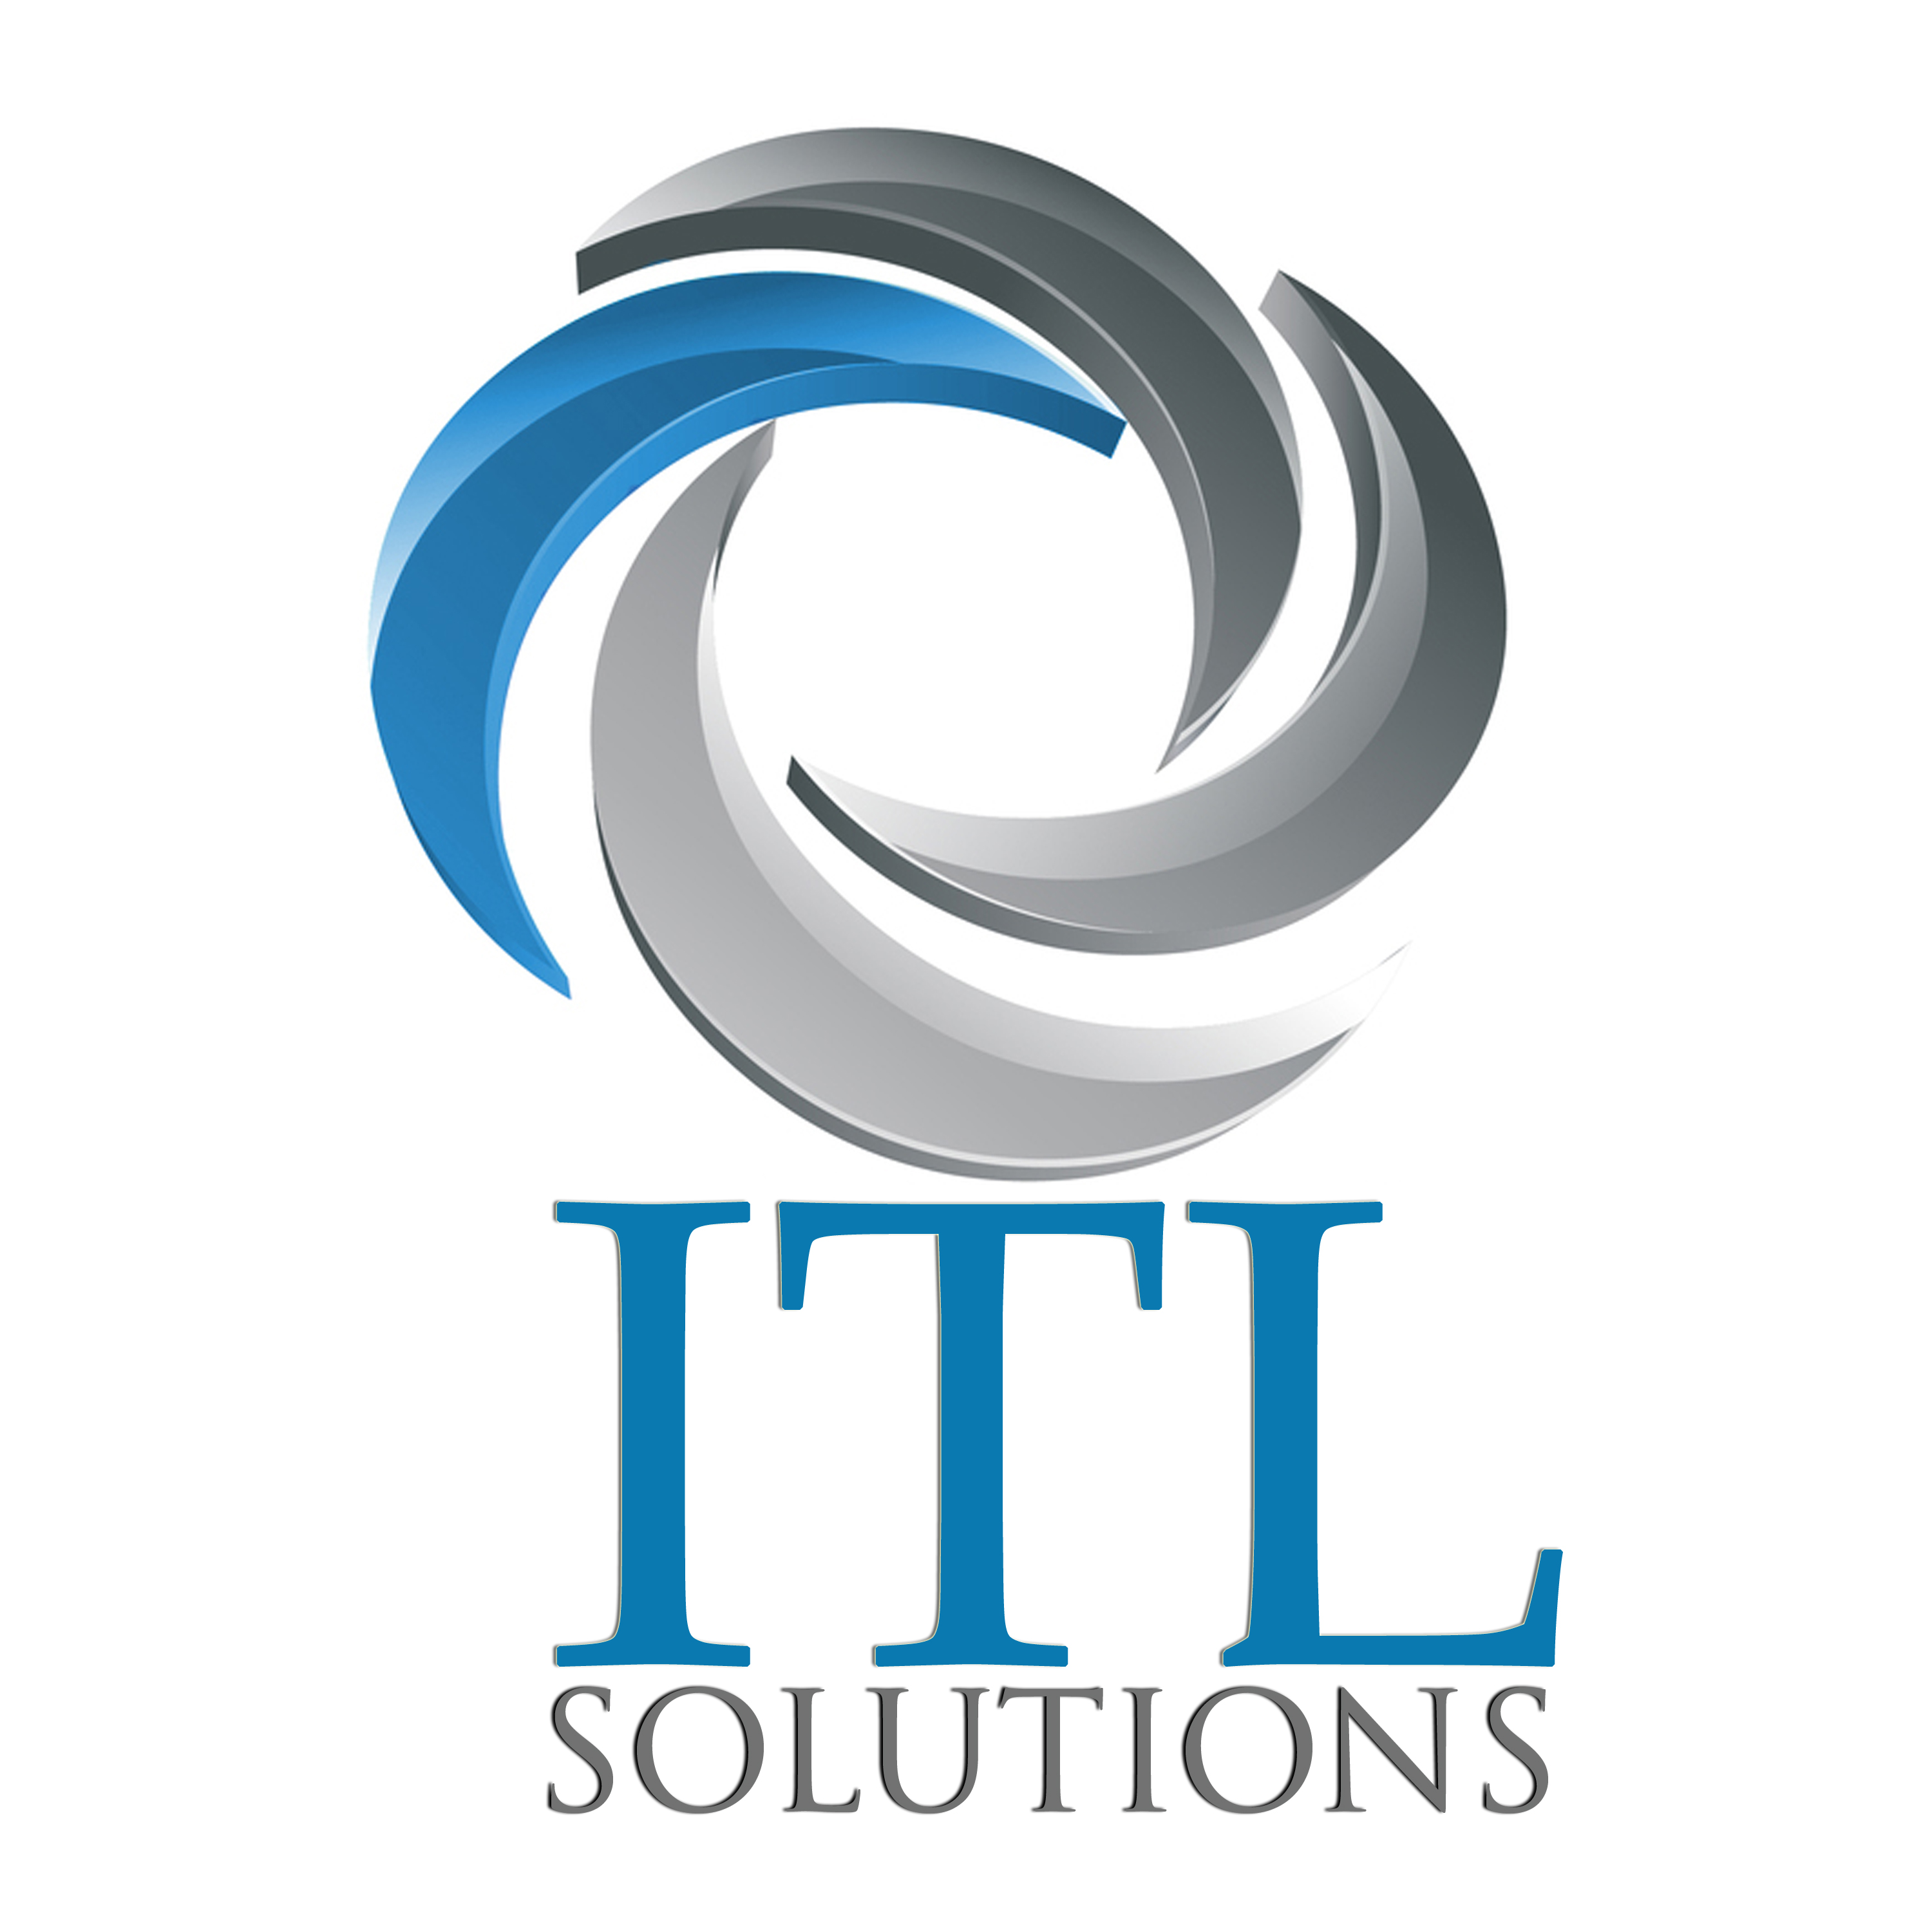 images/events/sponsor_logos/ITL_Solutions.jpg